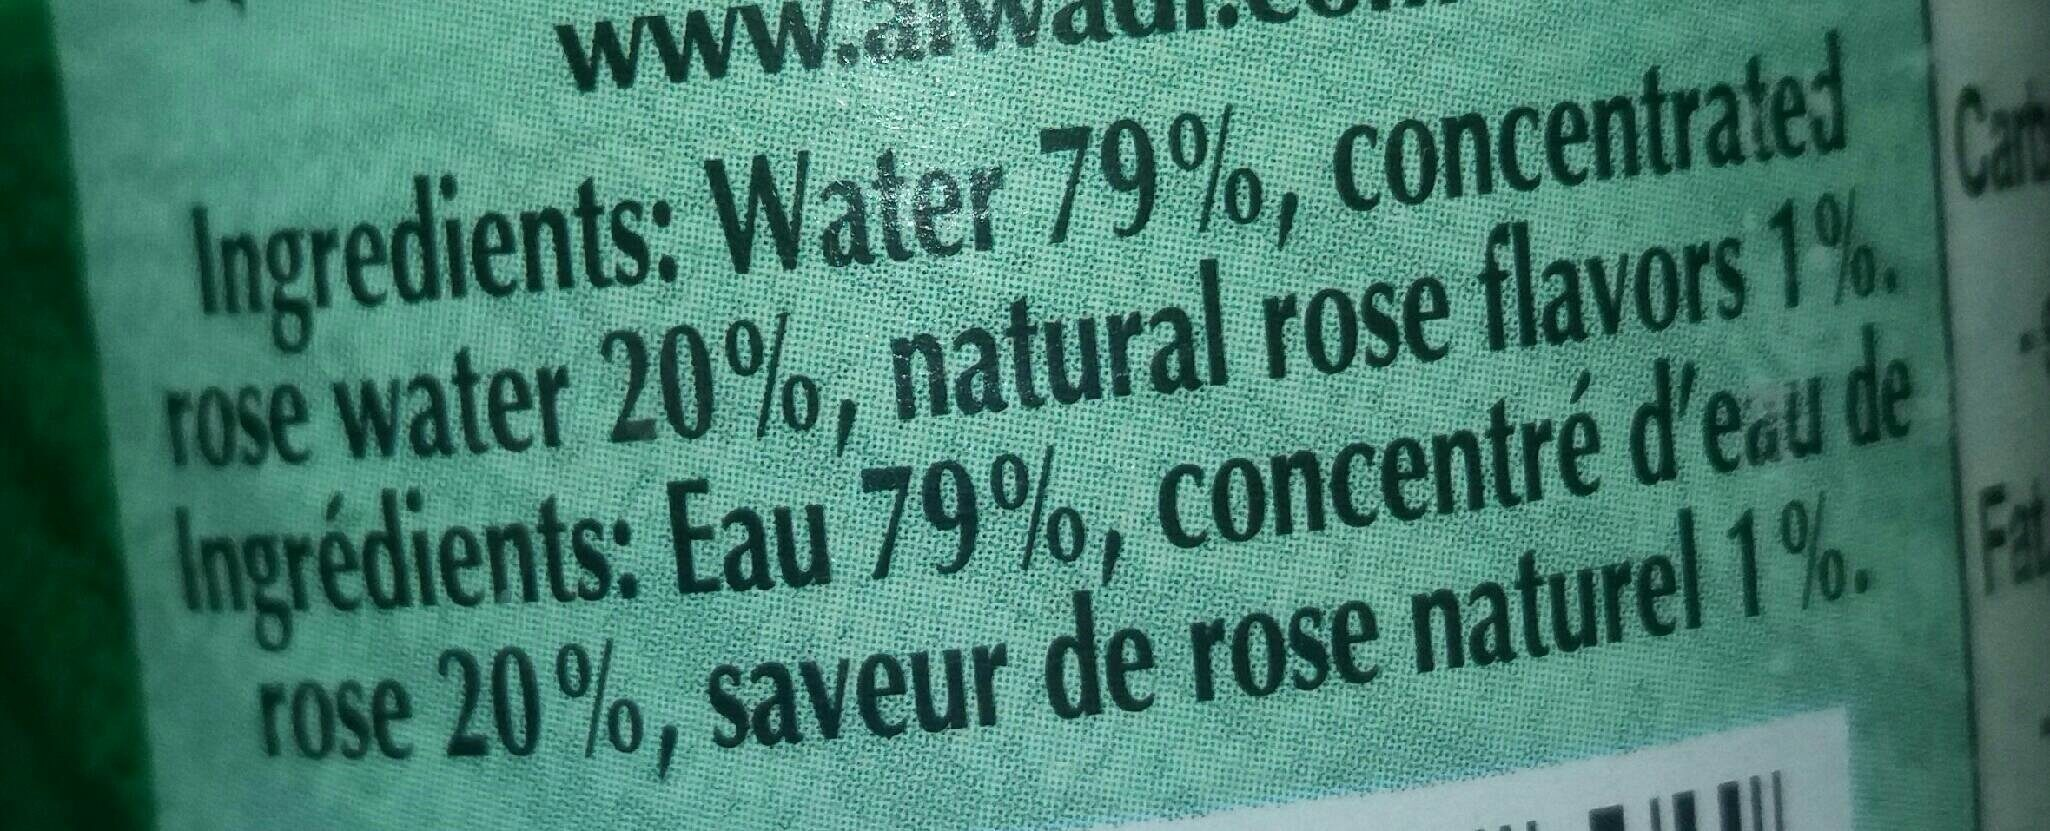 al wadi rose water